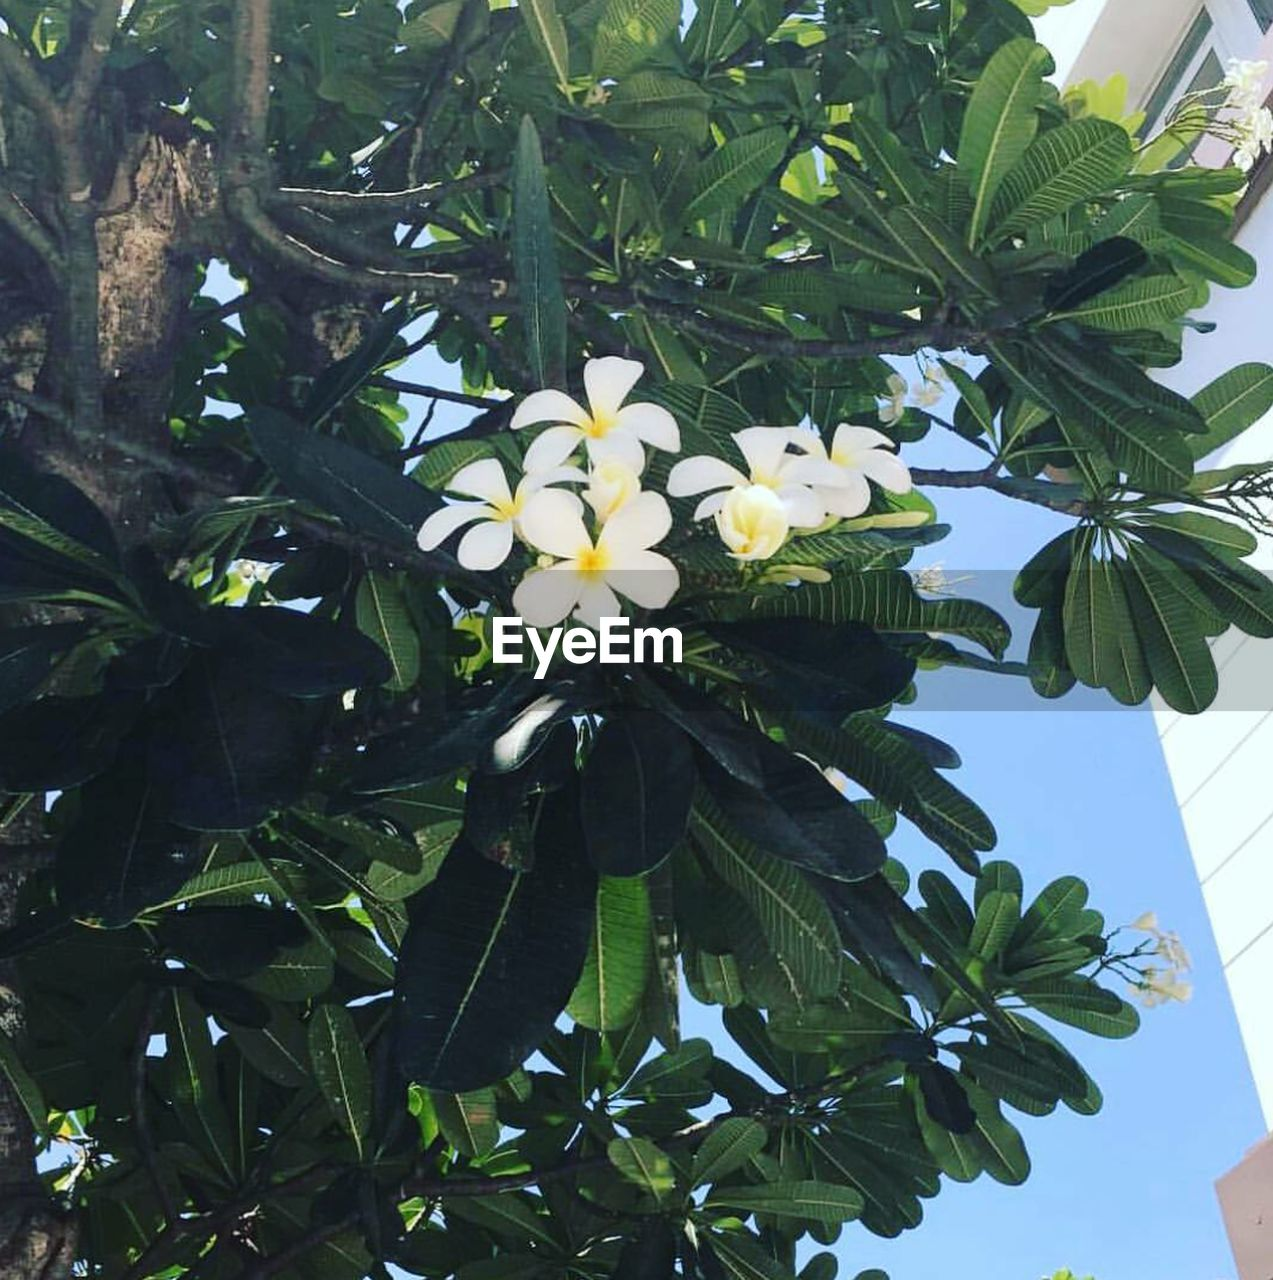 flower, growth, leaf, petal, beauty in nature, nature, freshness, no people, day, fragility, green color, plant, blooming, outdoors, flower head, tree, close-up, frangipani